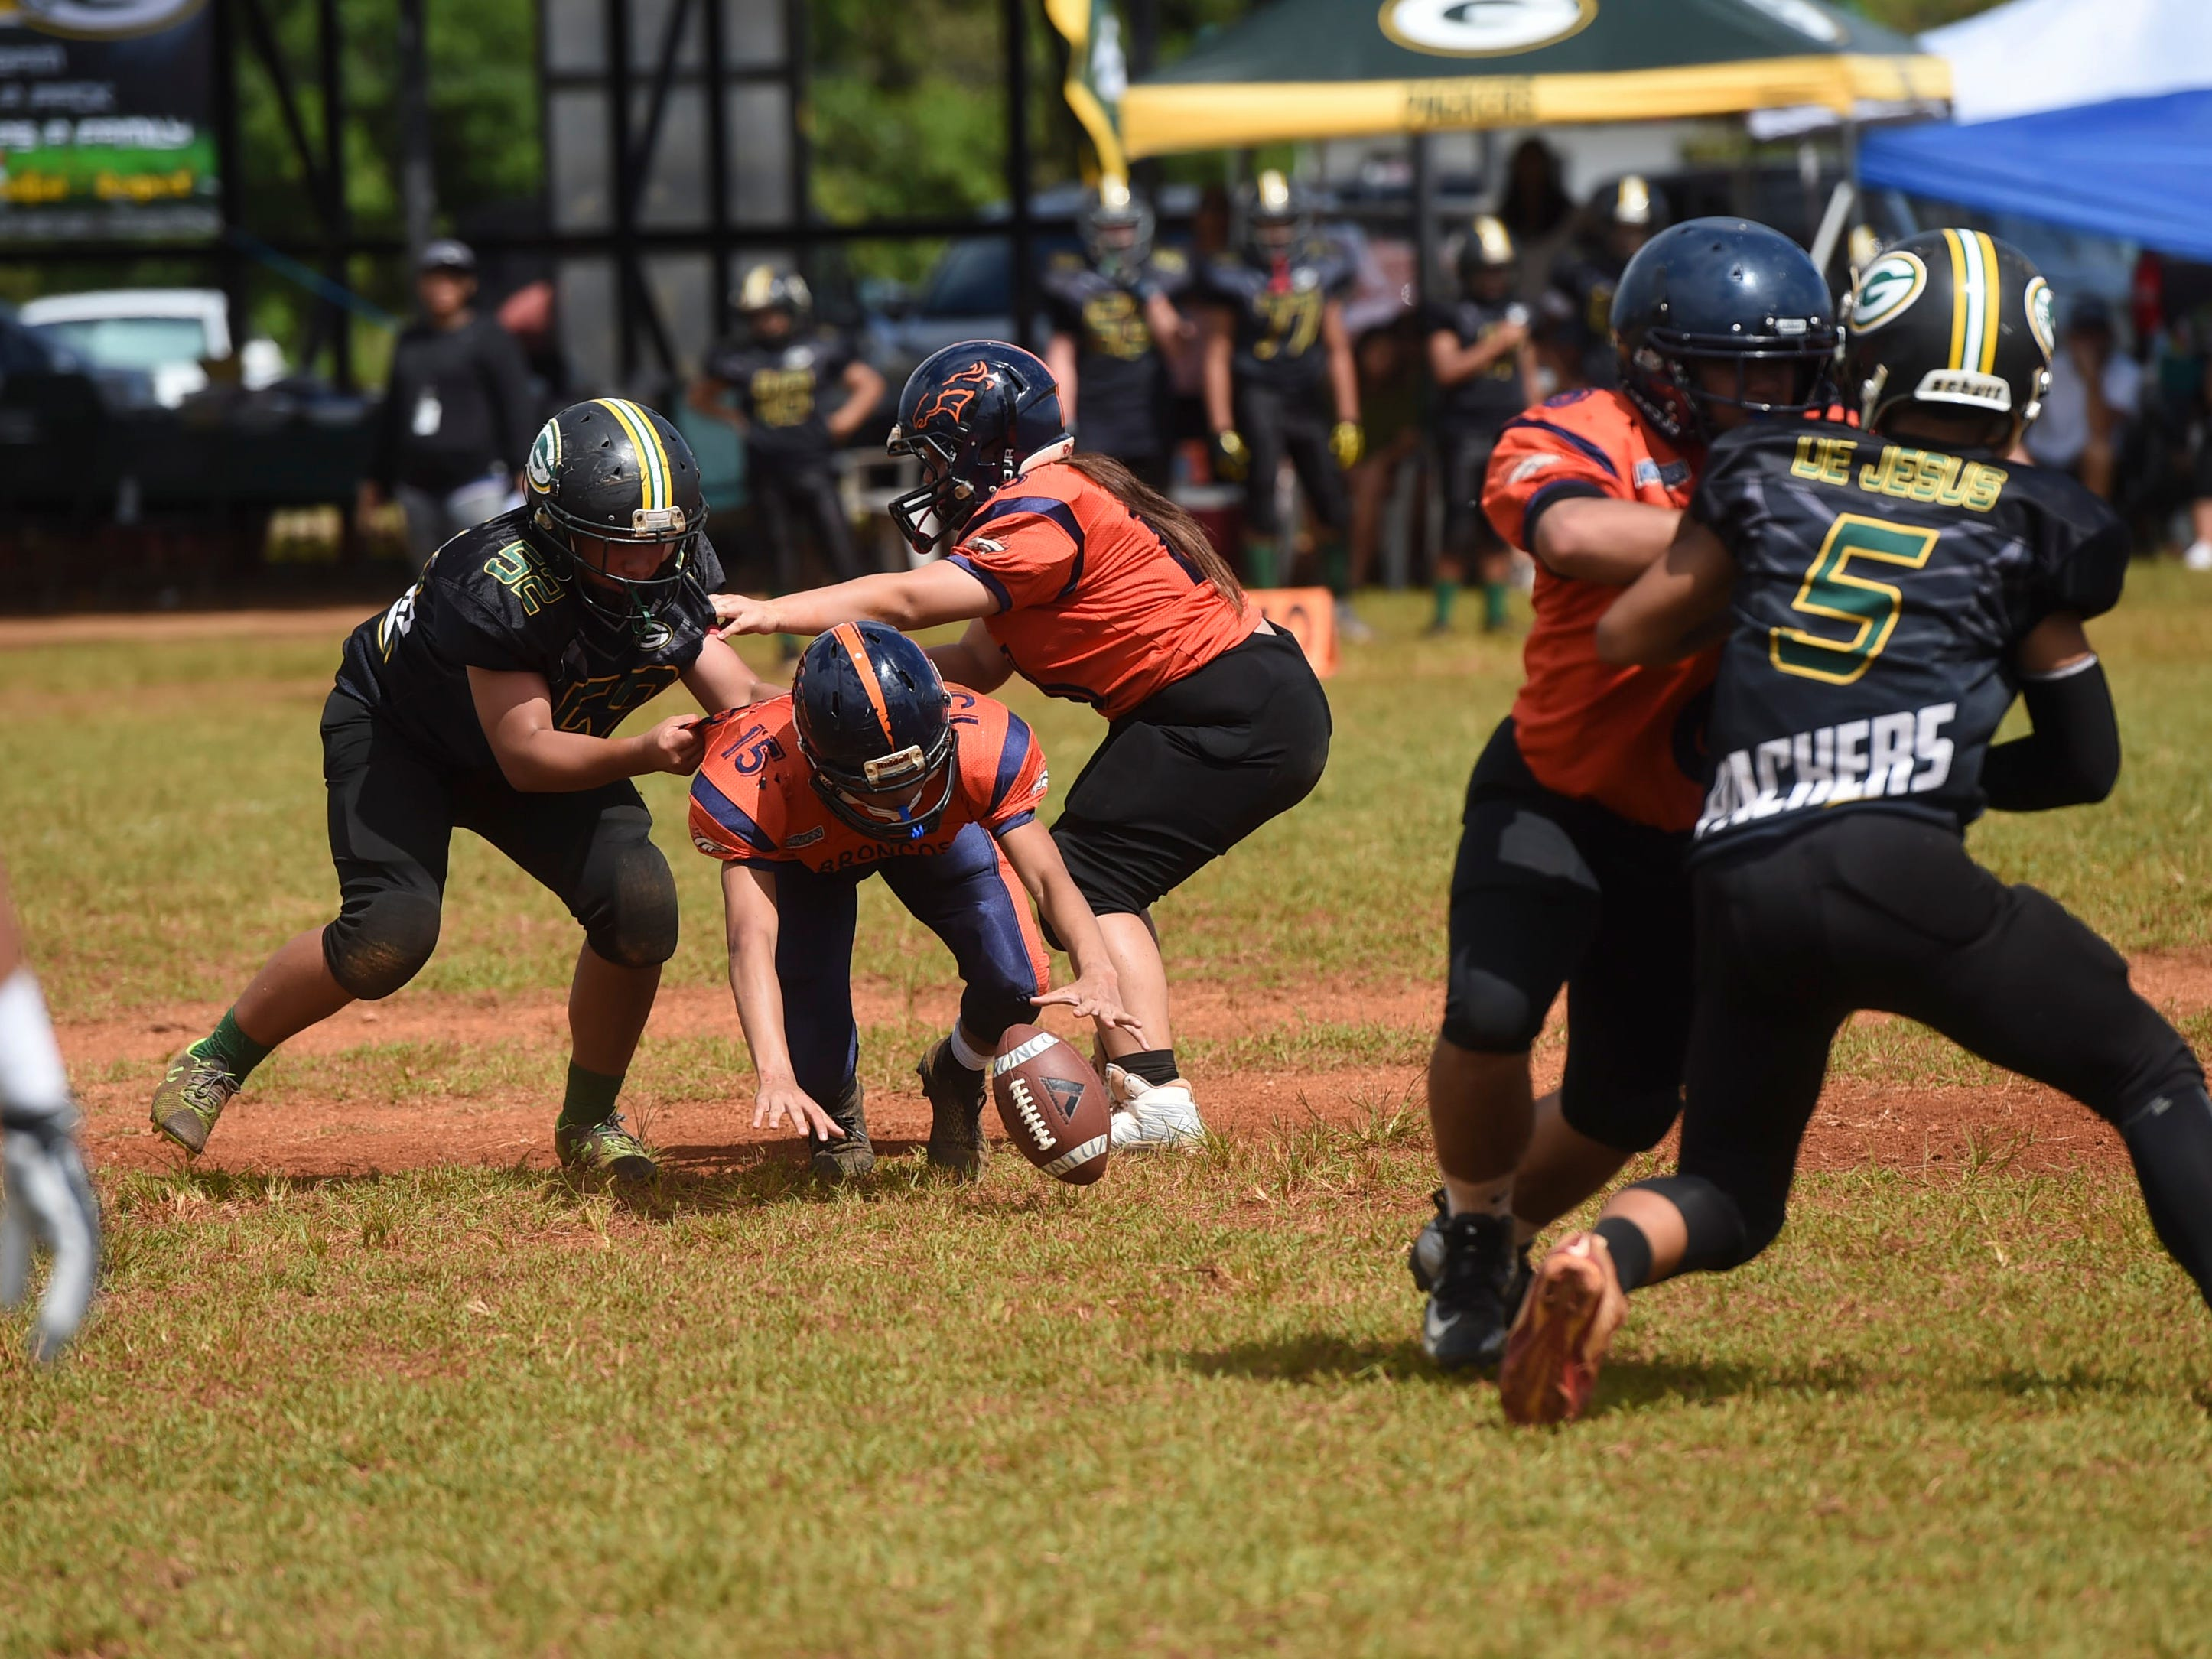 Cinnabon Island Broncos player Ipo Aguon Indalecio (15) dives for the ball the ball against the Guam Packers during their Guam National Youth Football Federation Matua division game at the Mikkel Tan I. Vy Field in Tiyan on Sept. 2, 2018.